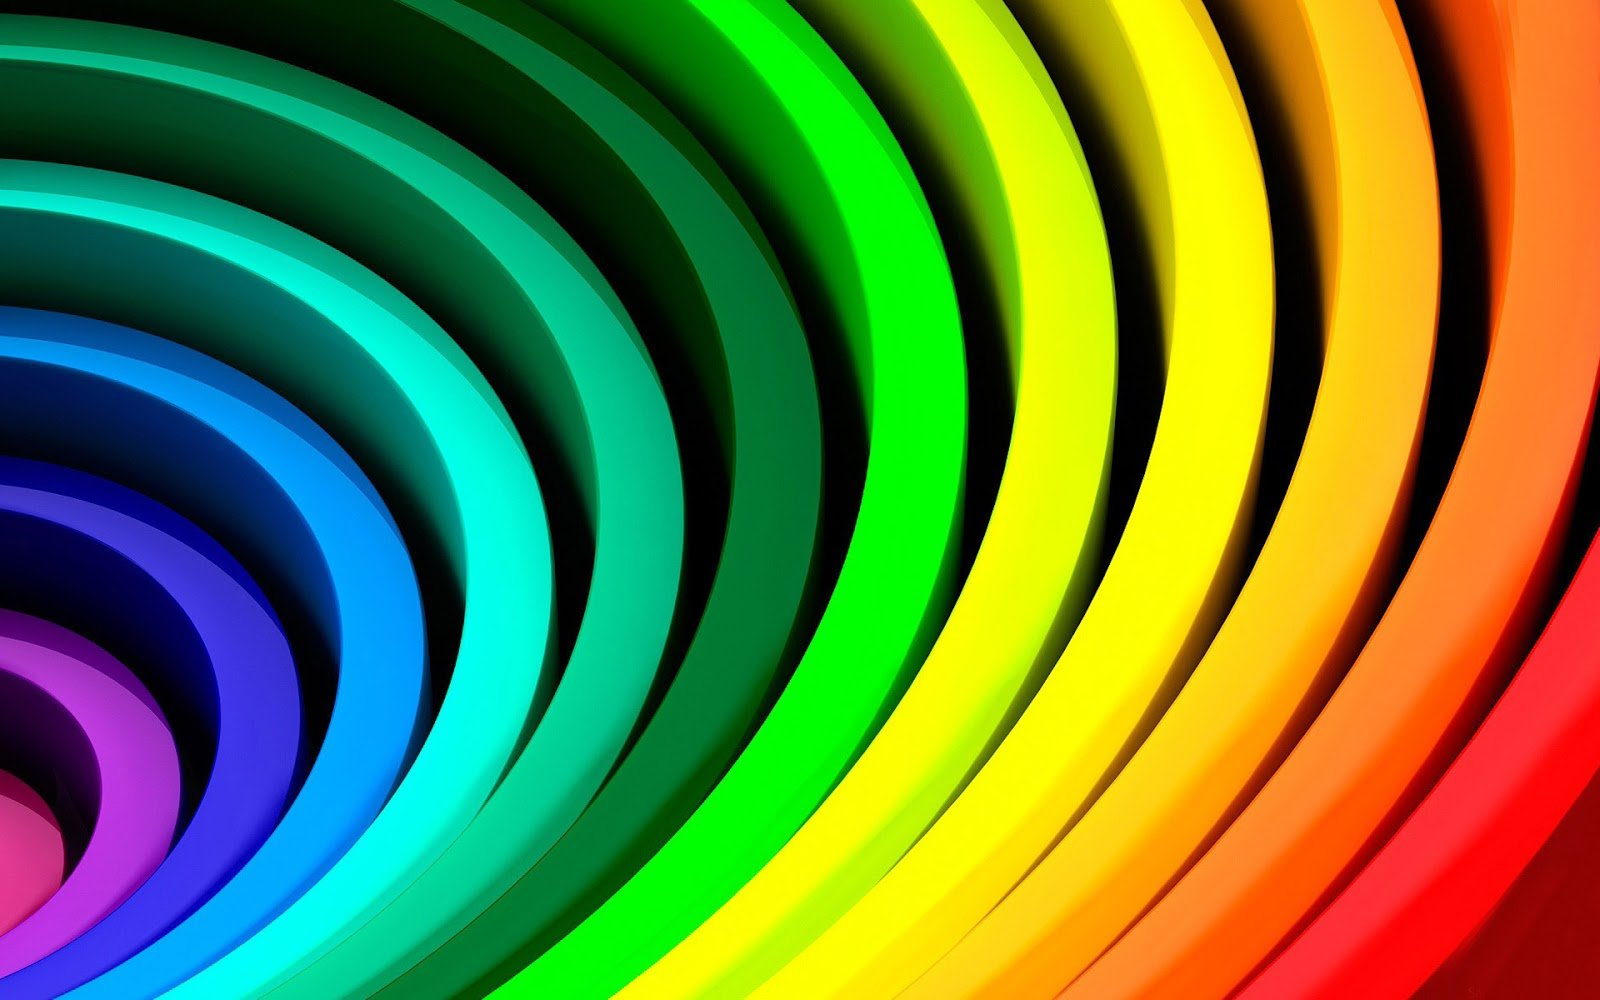 Colorful Wallpaper 3d Free Download: Colorful 3d Wallpapers